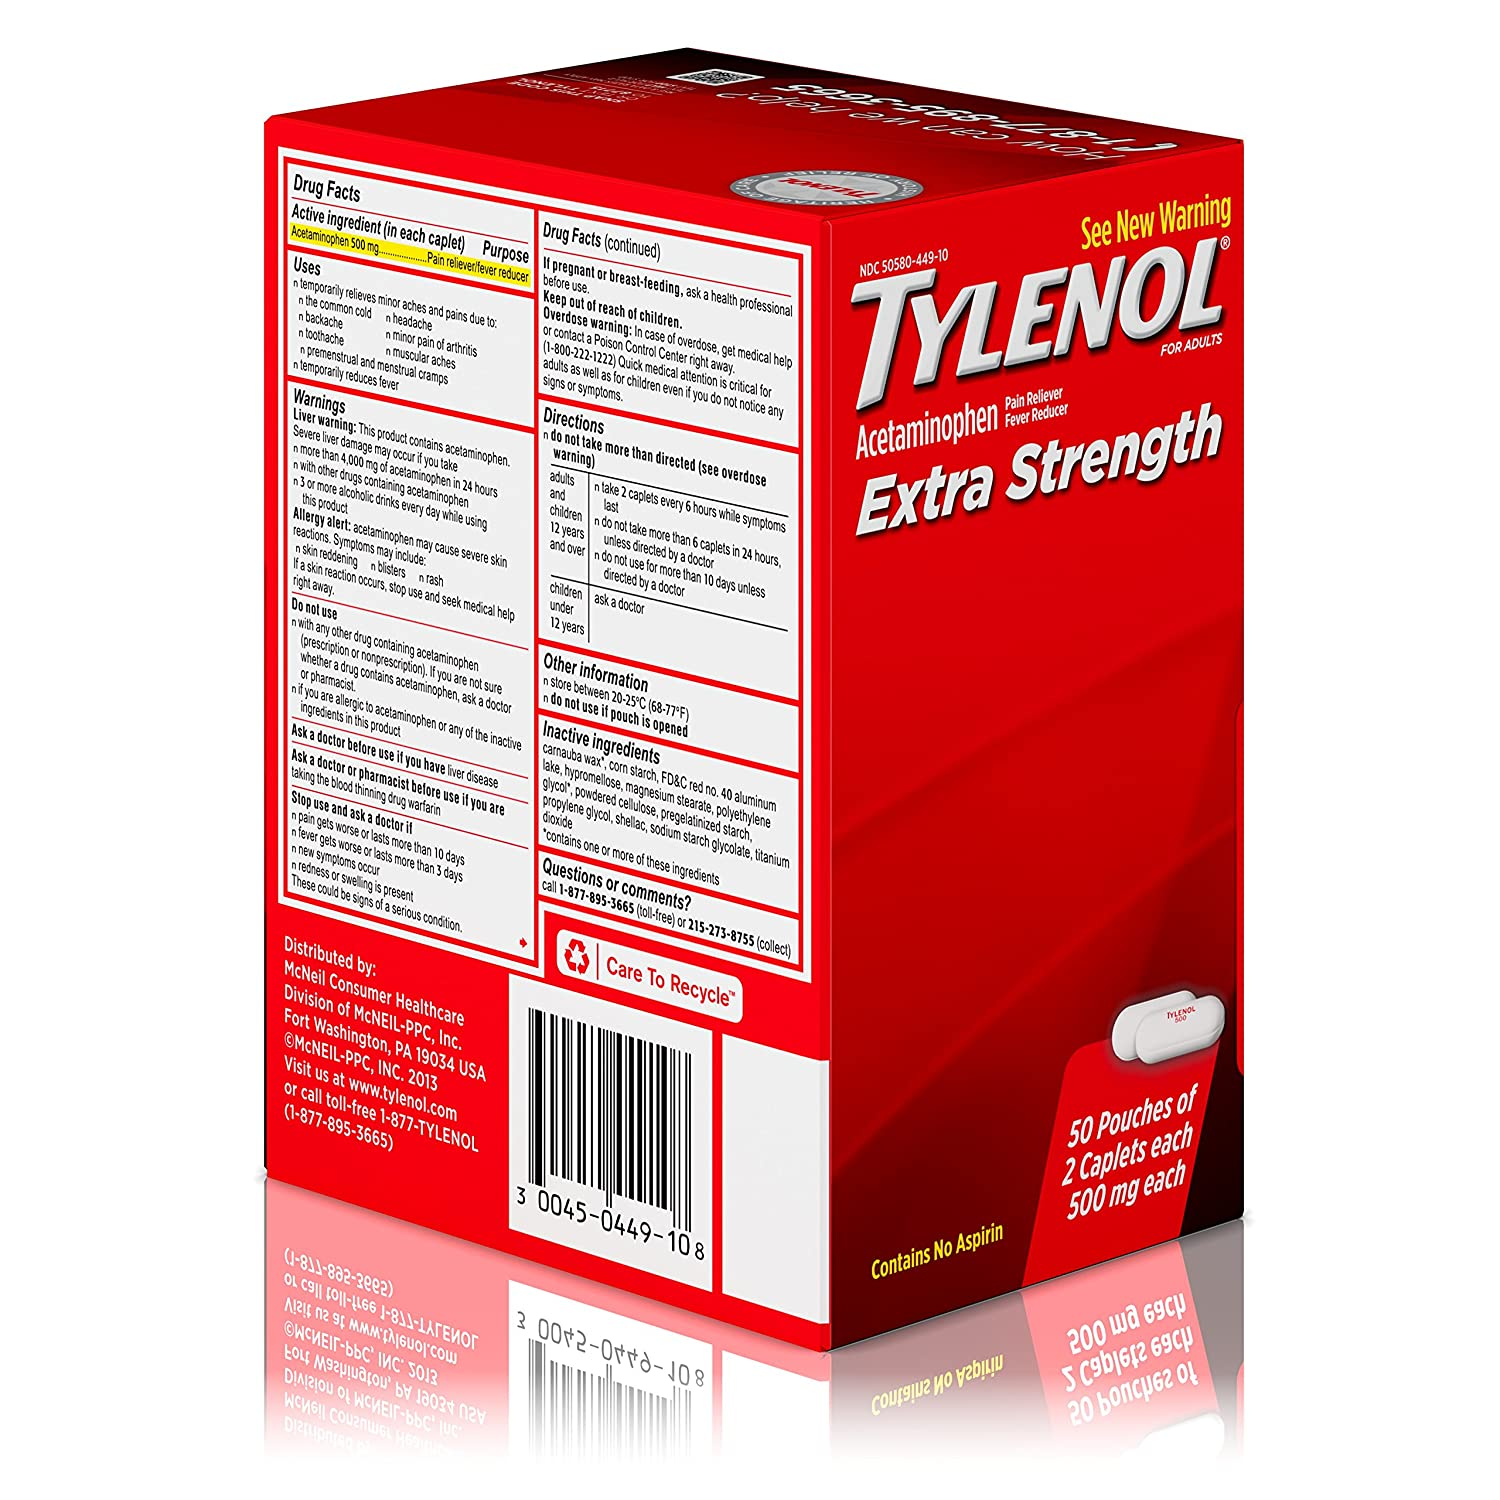 Amazon.com: Tylenol Extra Strength Caplets, Fever Reducer and Pain  Reliever, 500 mg, 50 ct., Pack of 2: Prime Pantry